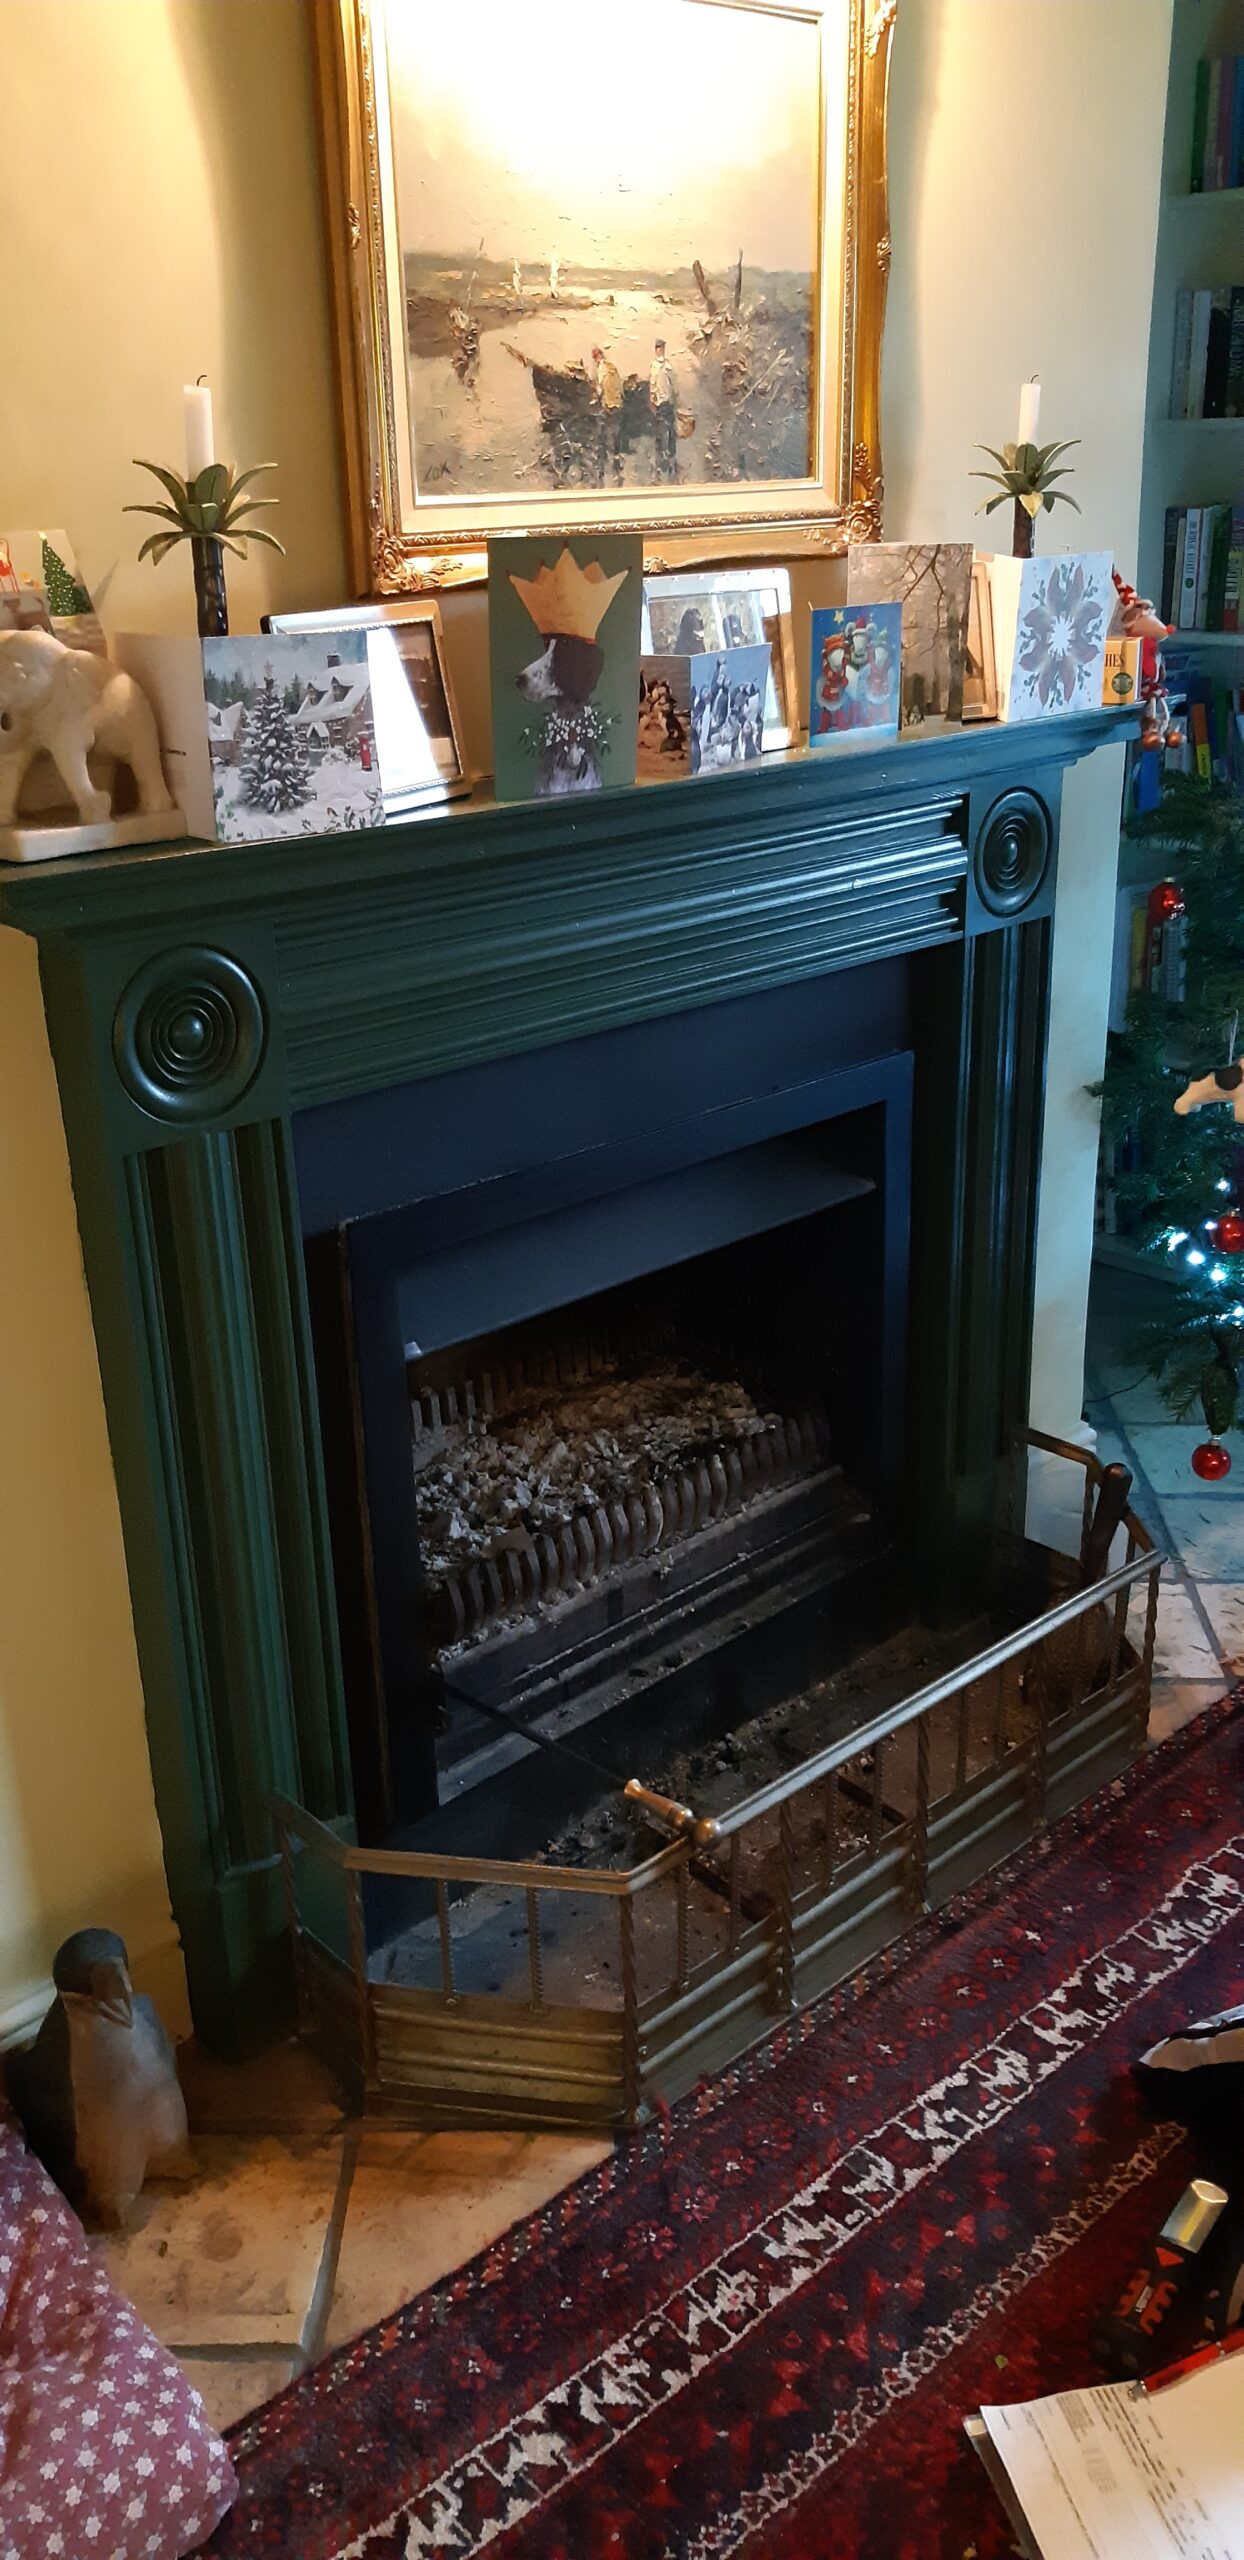 From Jetmaster to Jotul!